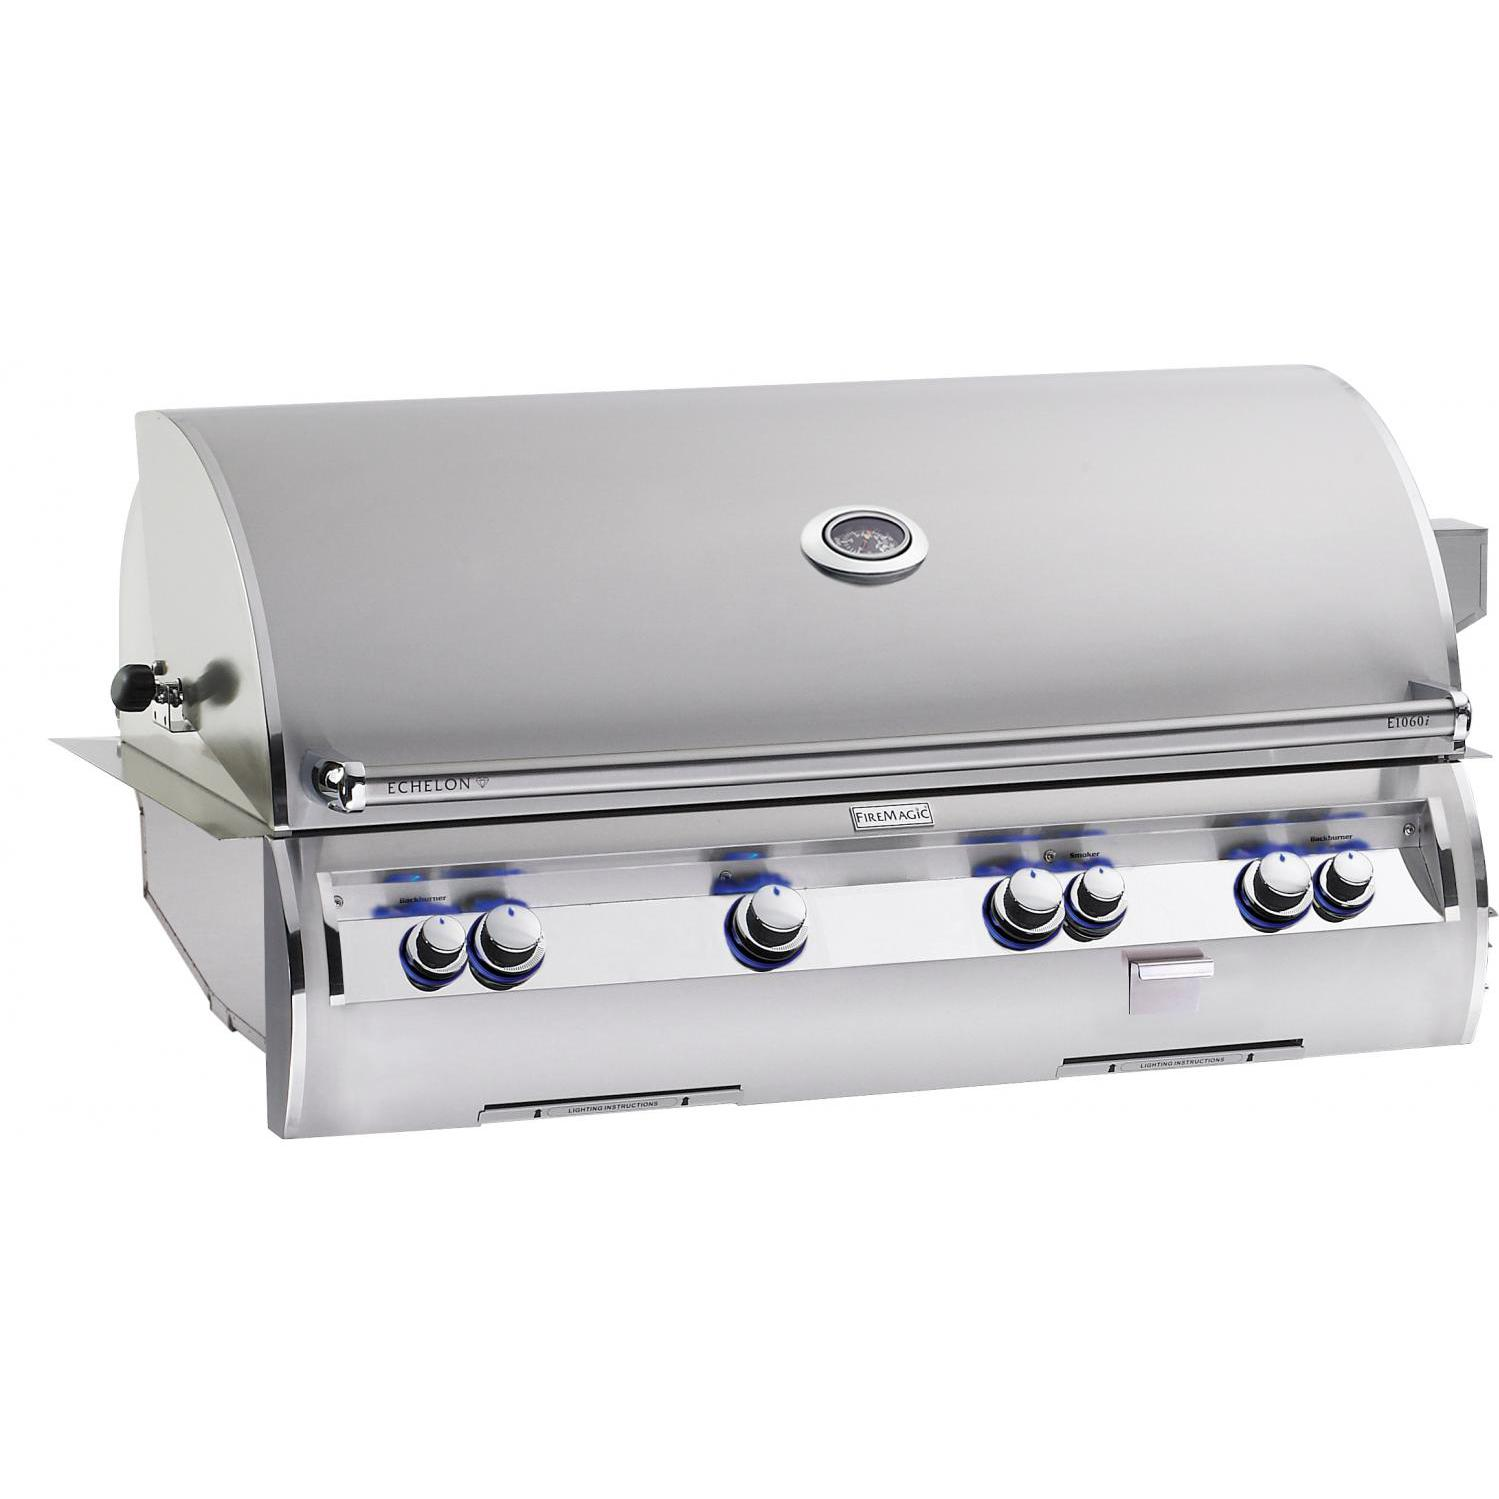 Fire Magic Echelon Diamond E1060i A Series Natural Gas Built-In Grill With One Infrared Burner 2879094